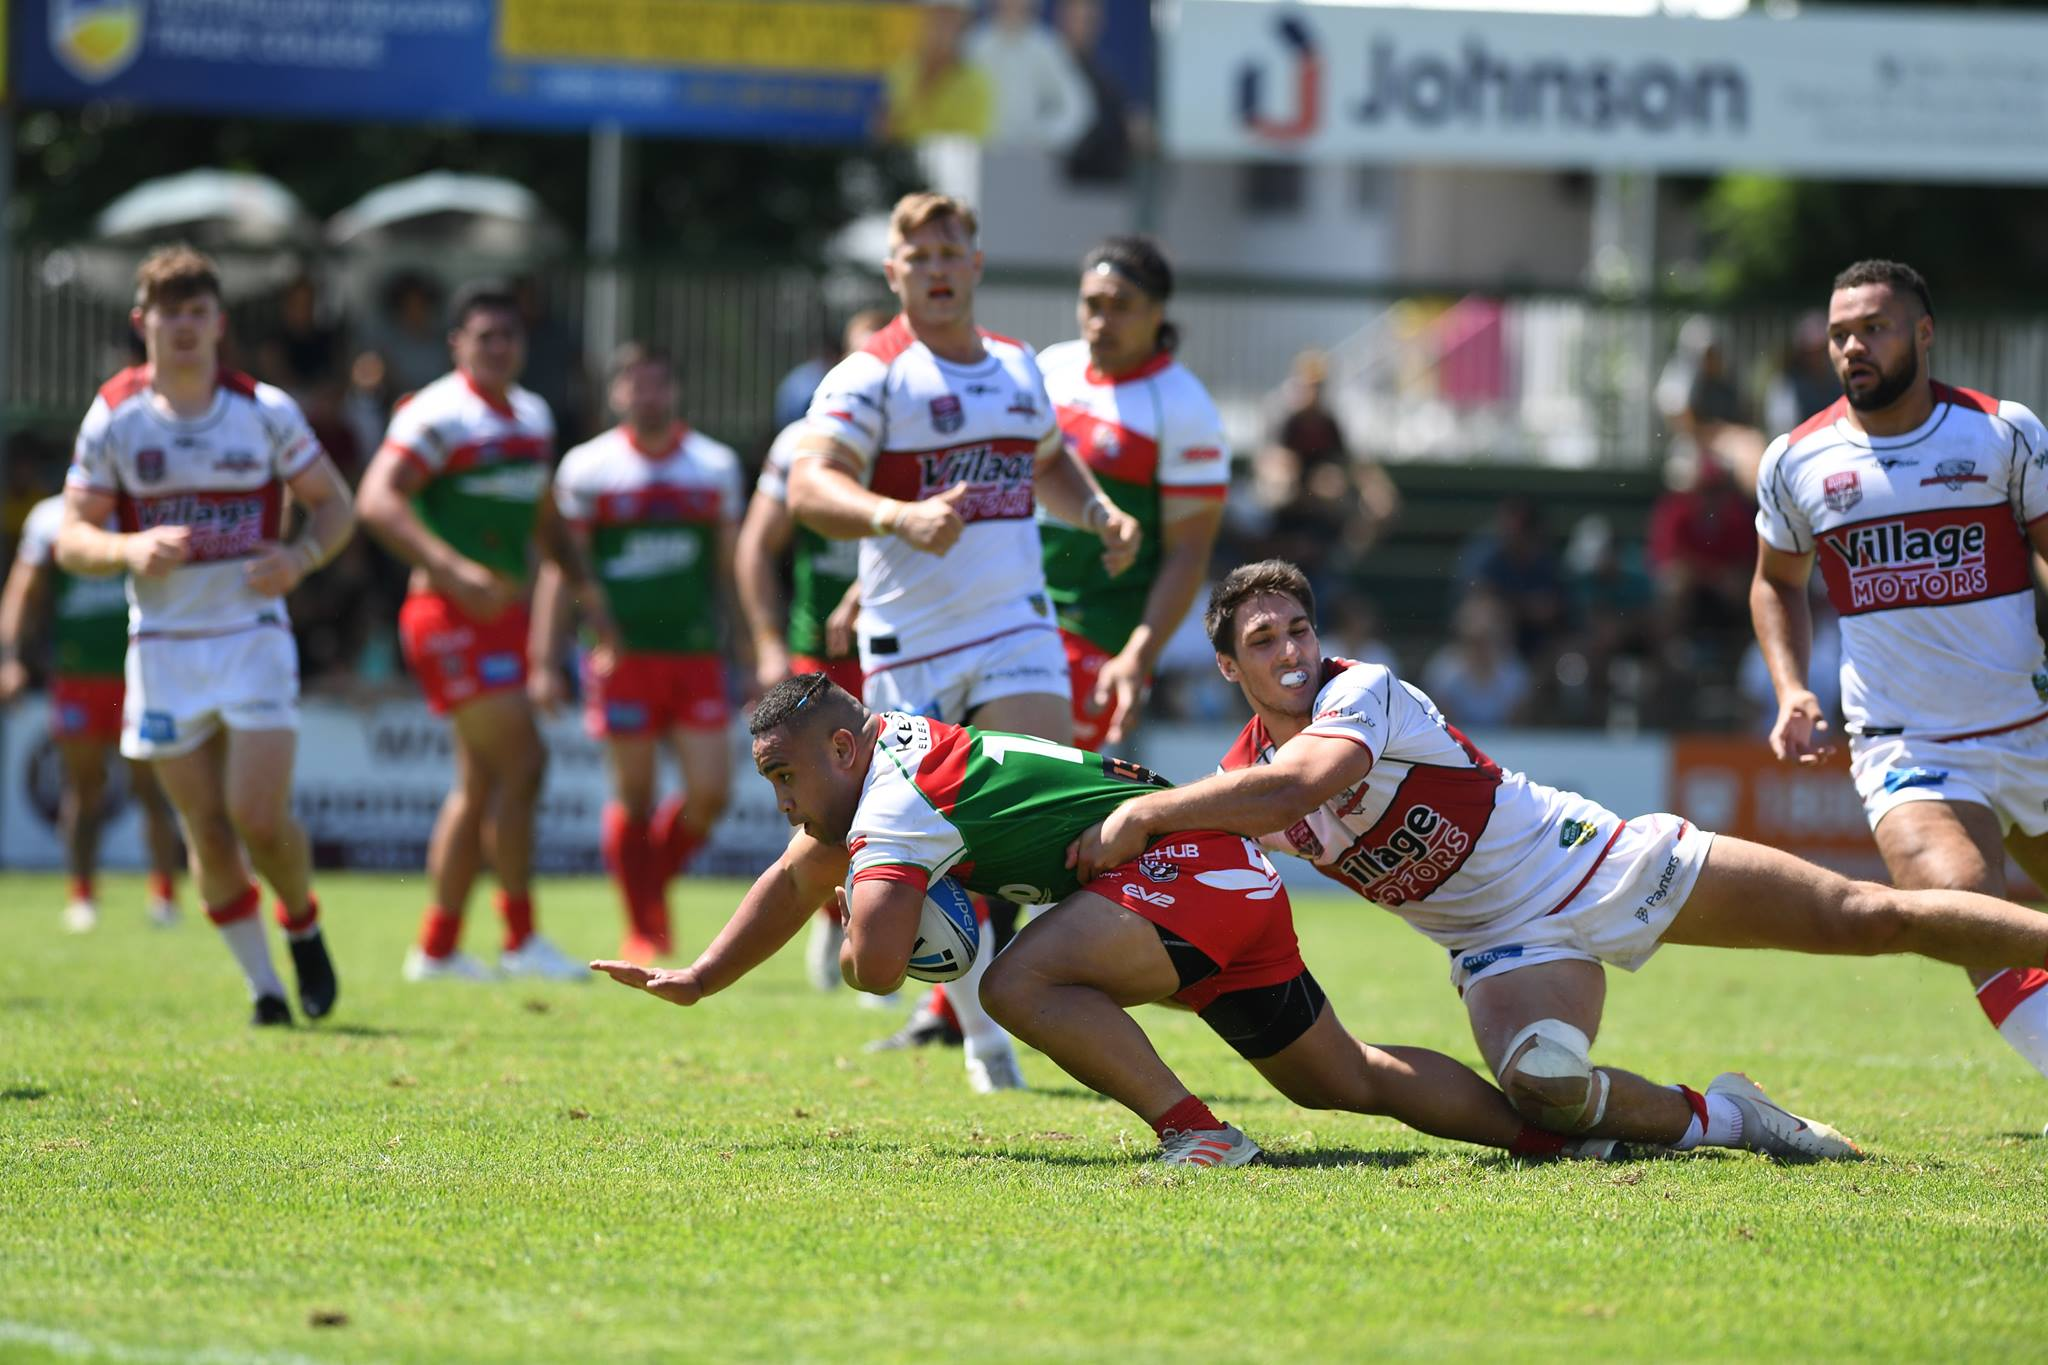 Rivals Seagulls and Dolphins to dig deep to stay in the race